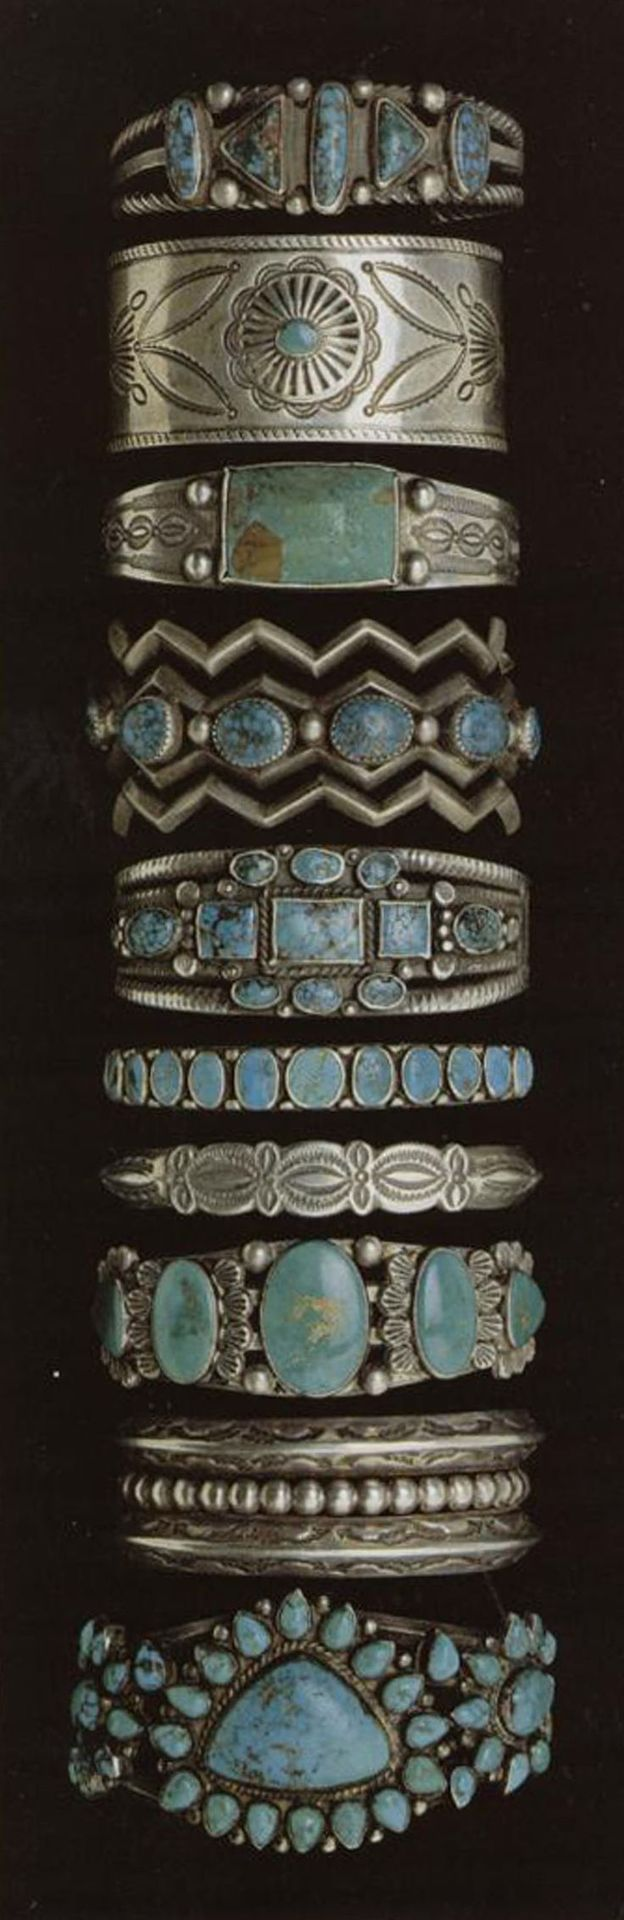 Navajo bracelets from the millicent rogers collectionvia pinterest